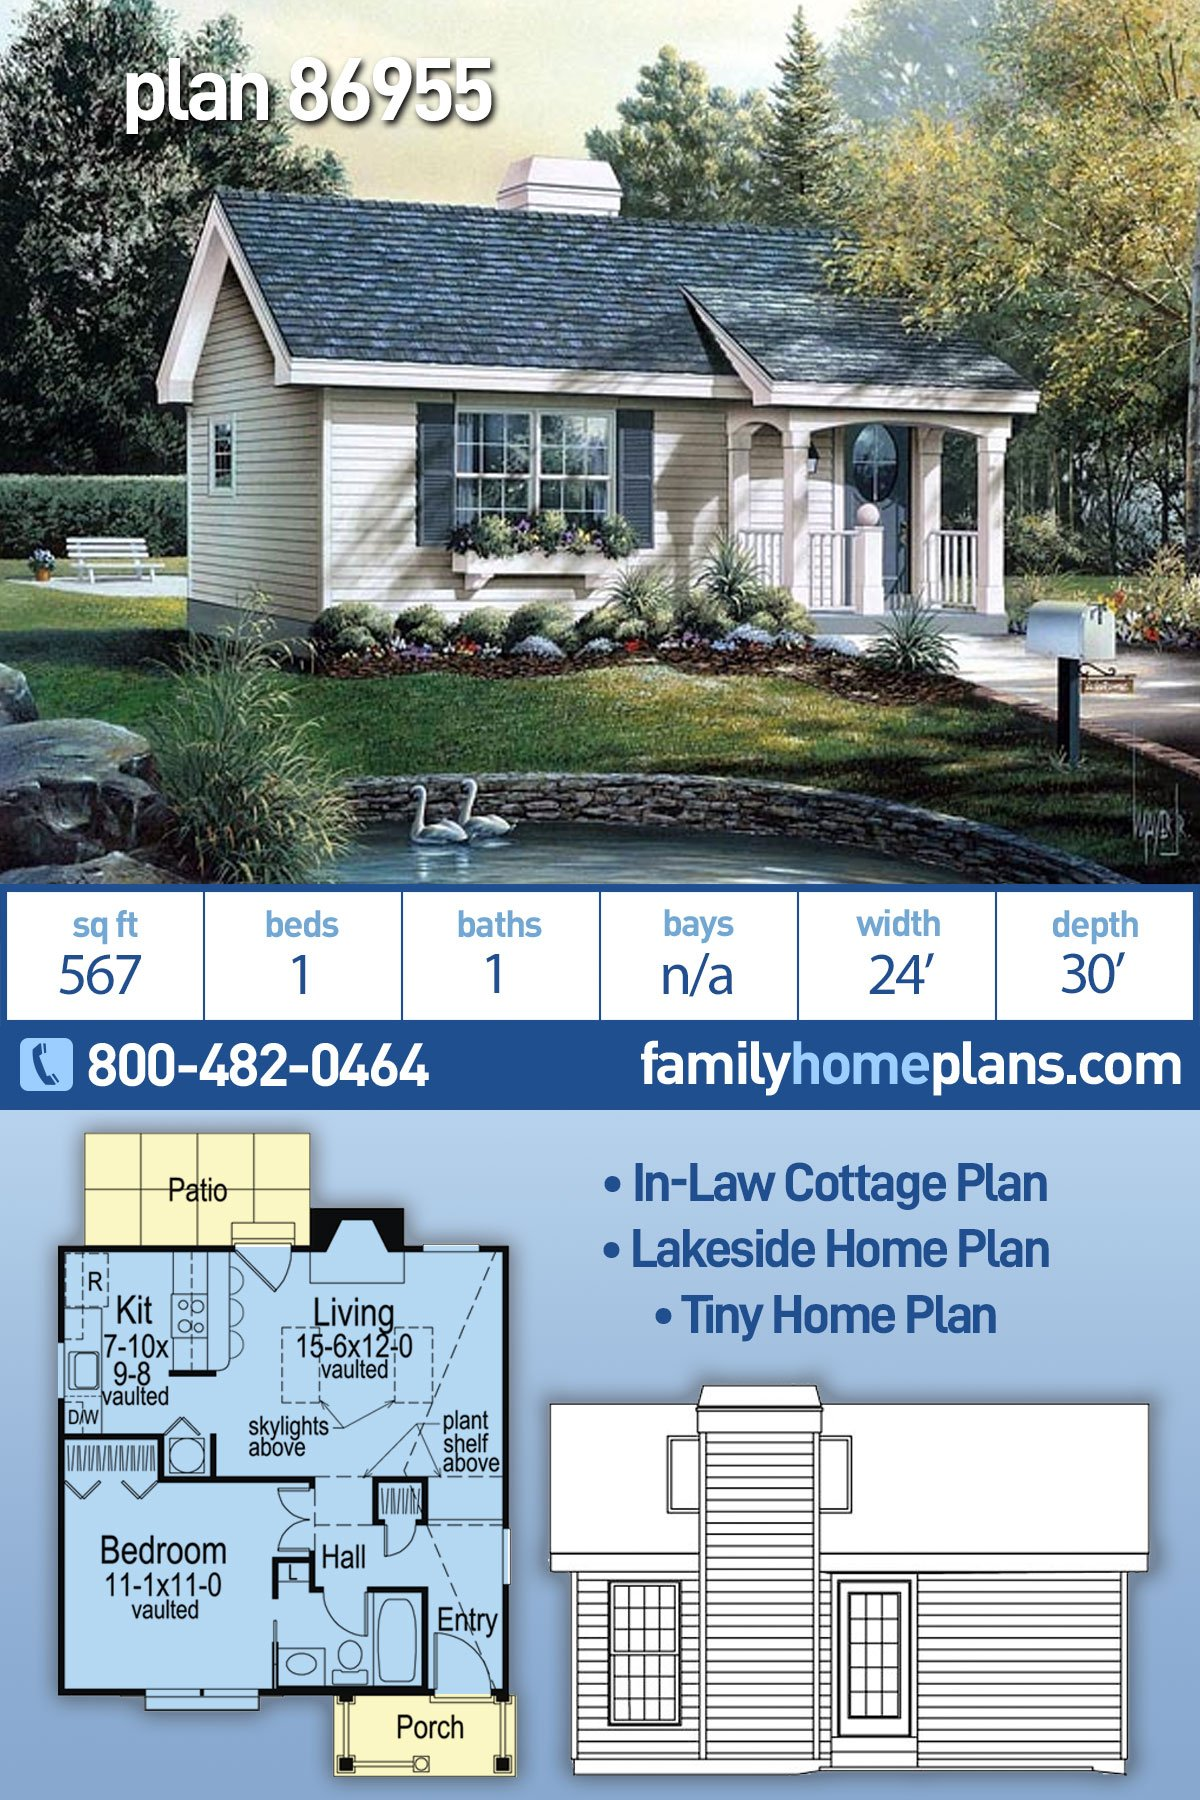 Cabin, Colonial, Cottage, Country, Ranch House Plan 86955 with 1 Beds, 1 Baths